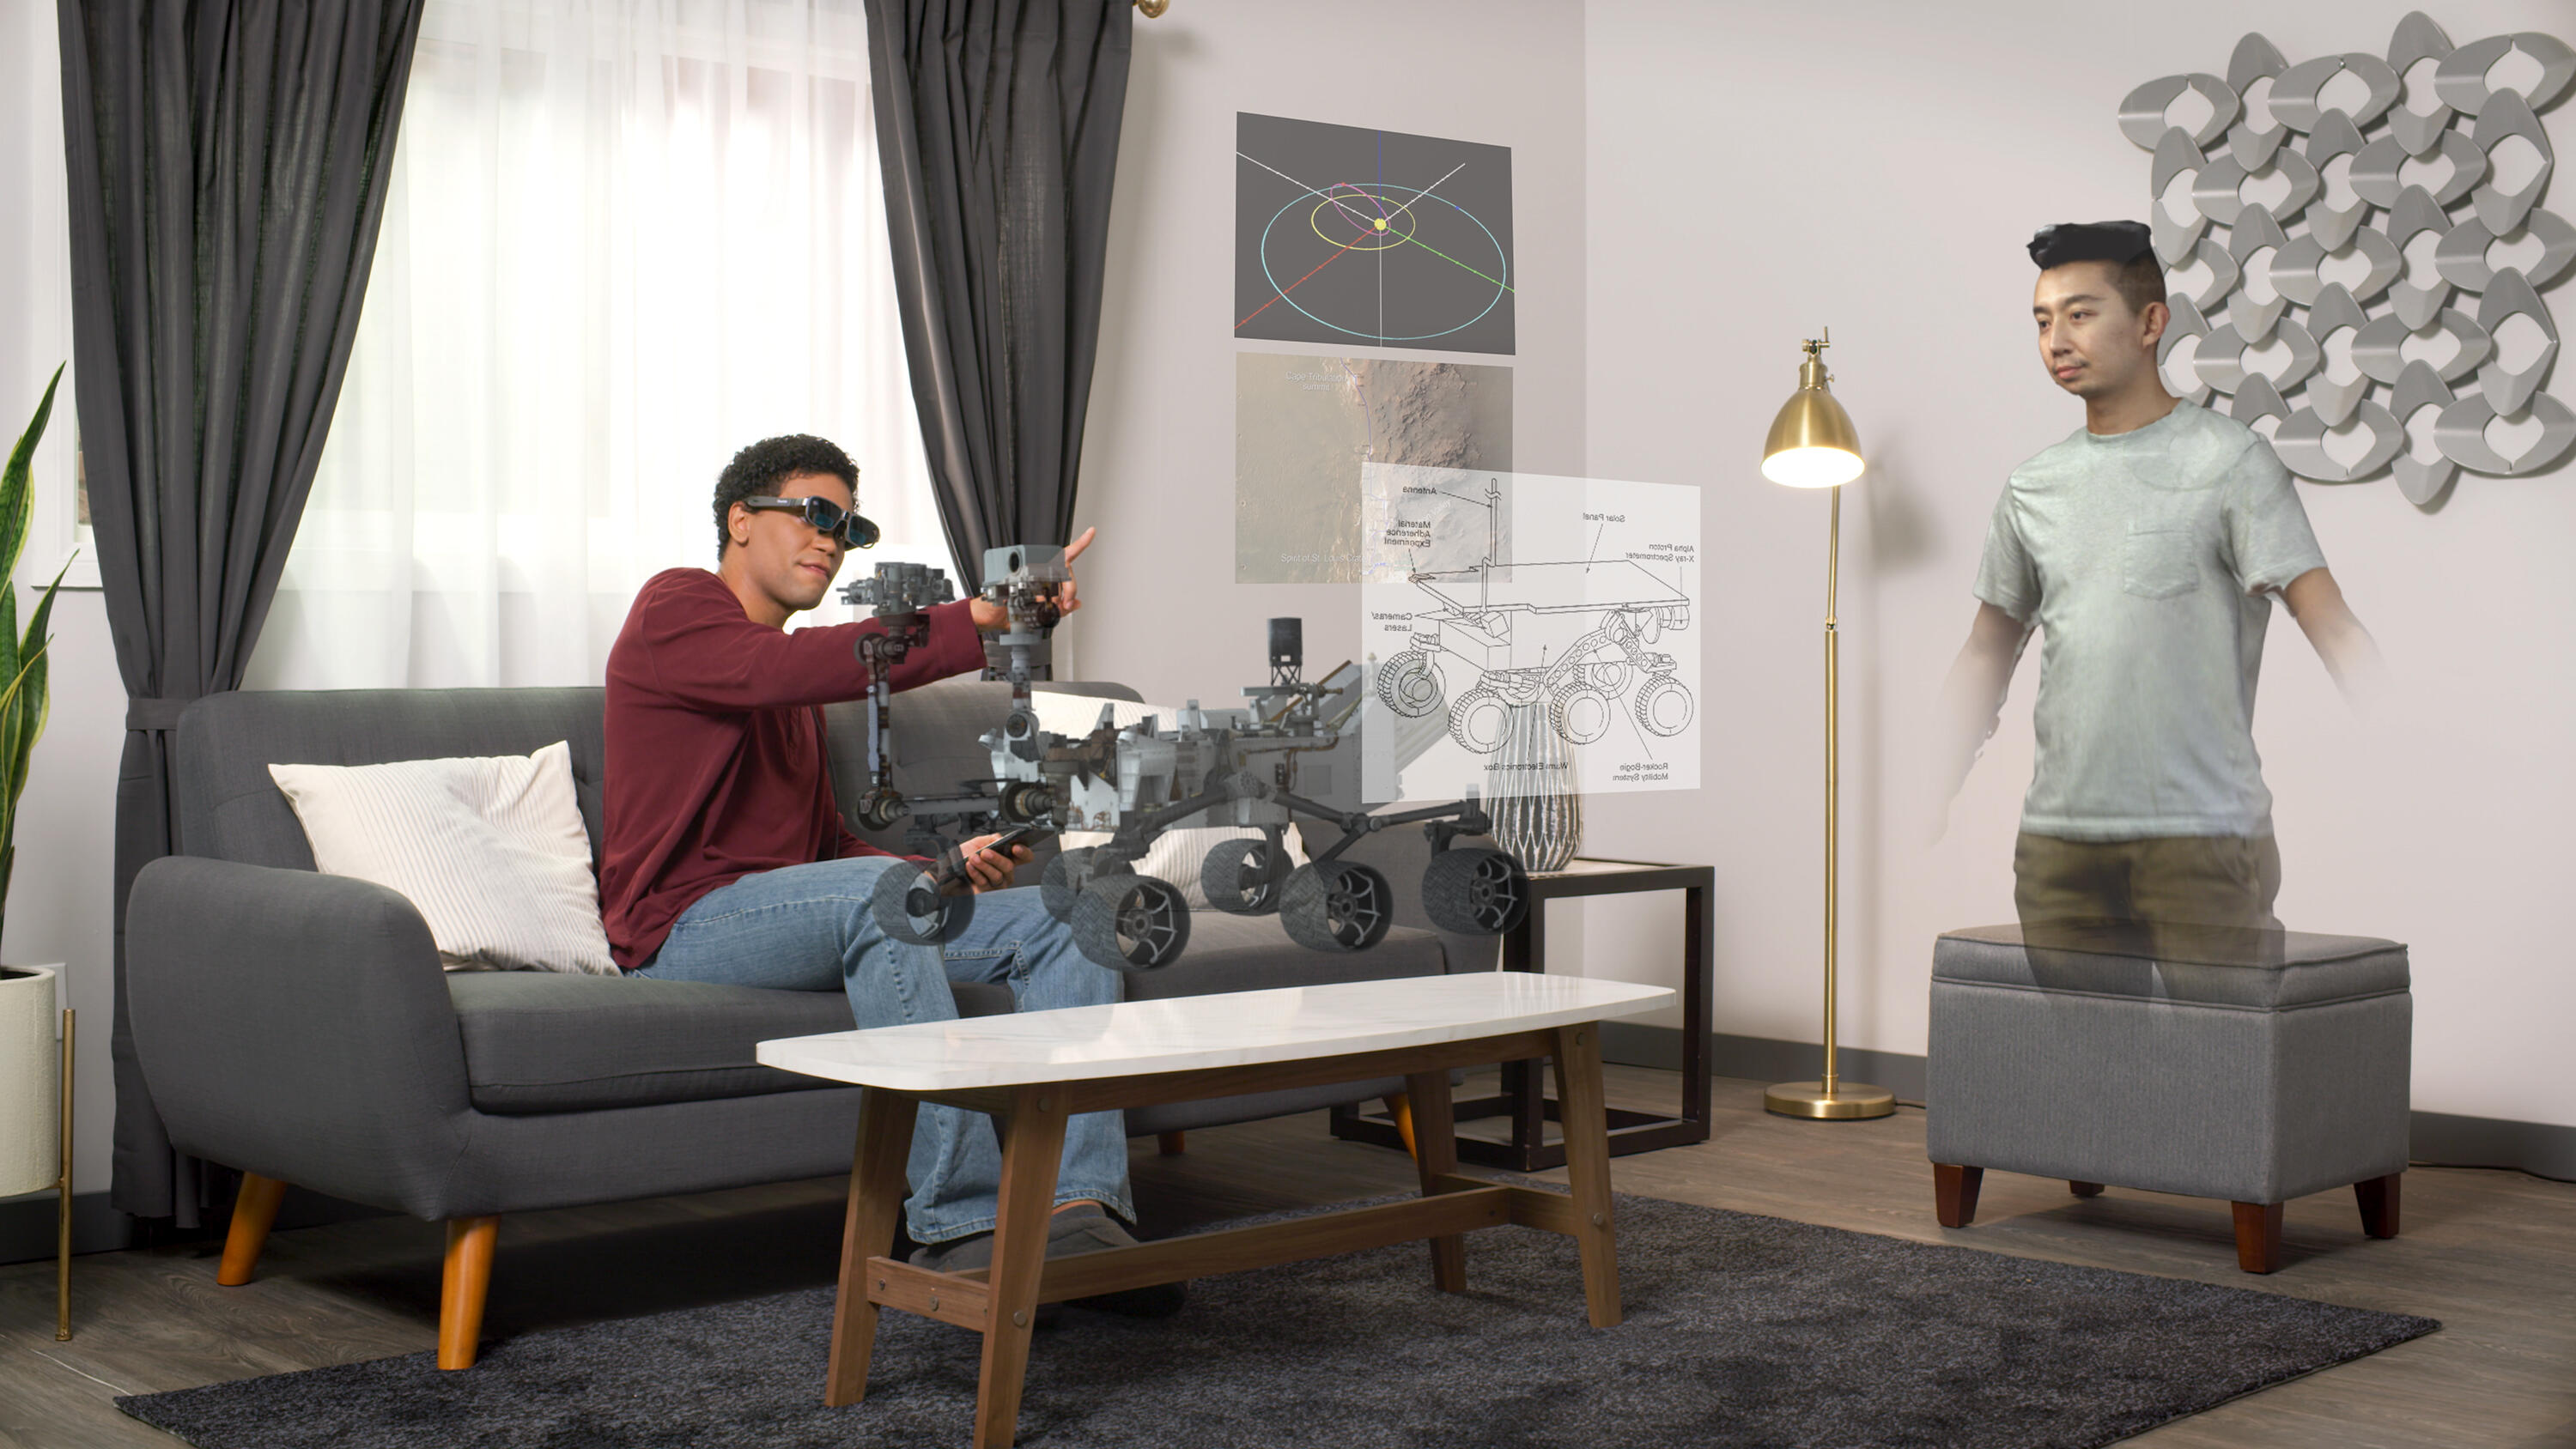 lifestyle-spatial-collaboration-xr1-ar-reference-design